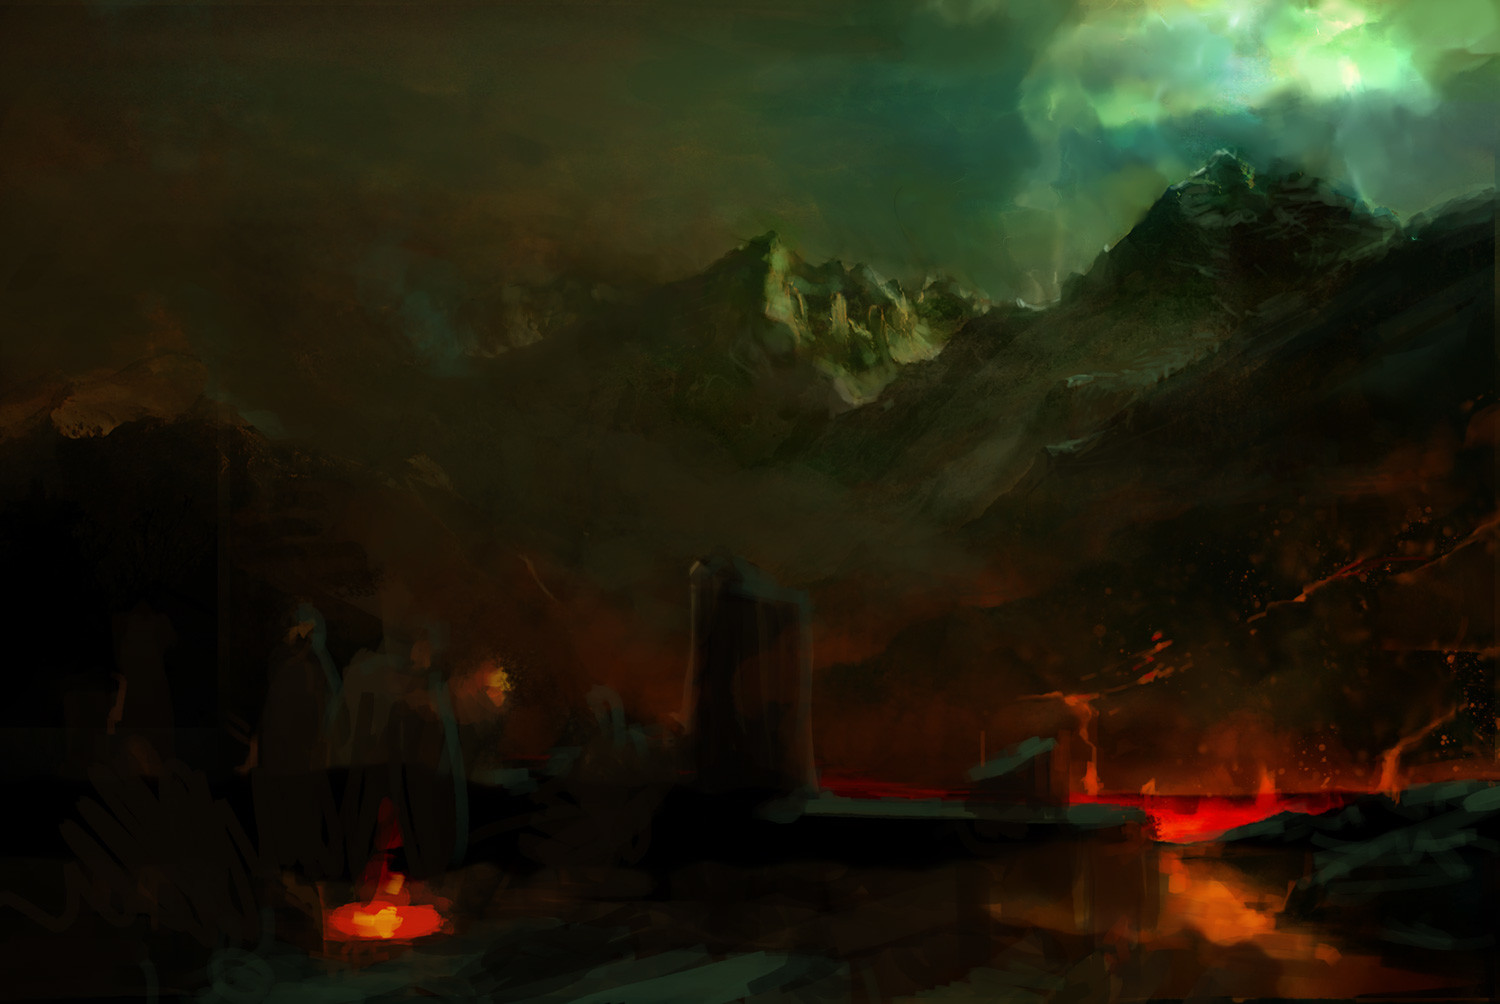 Stefan kopinski background rough